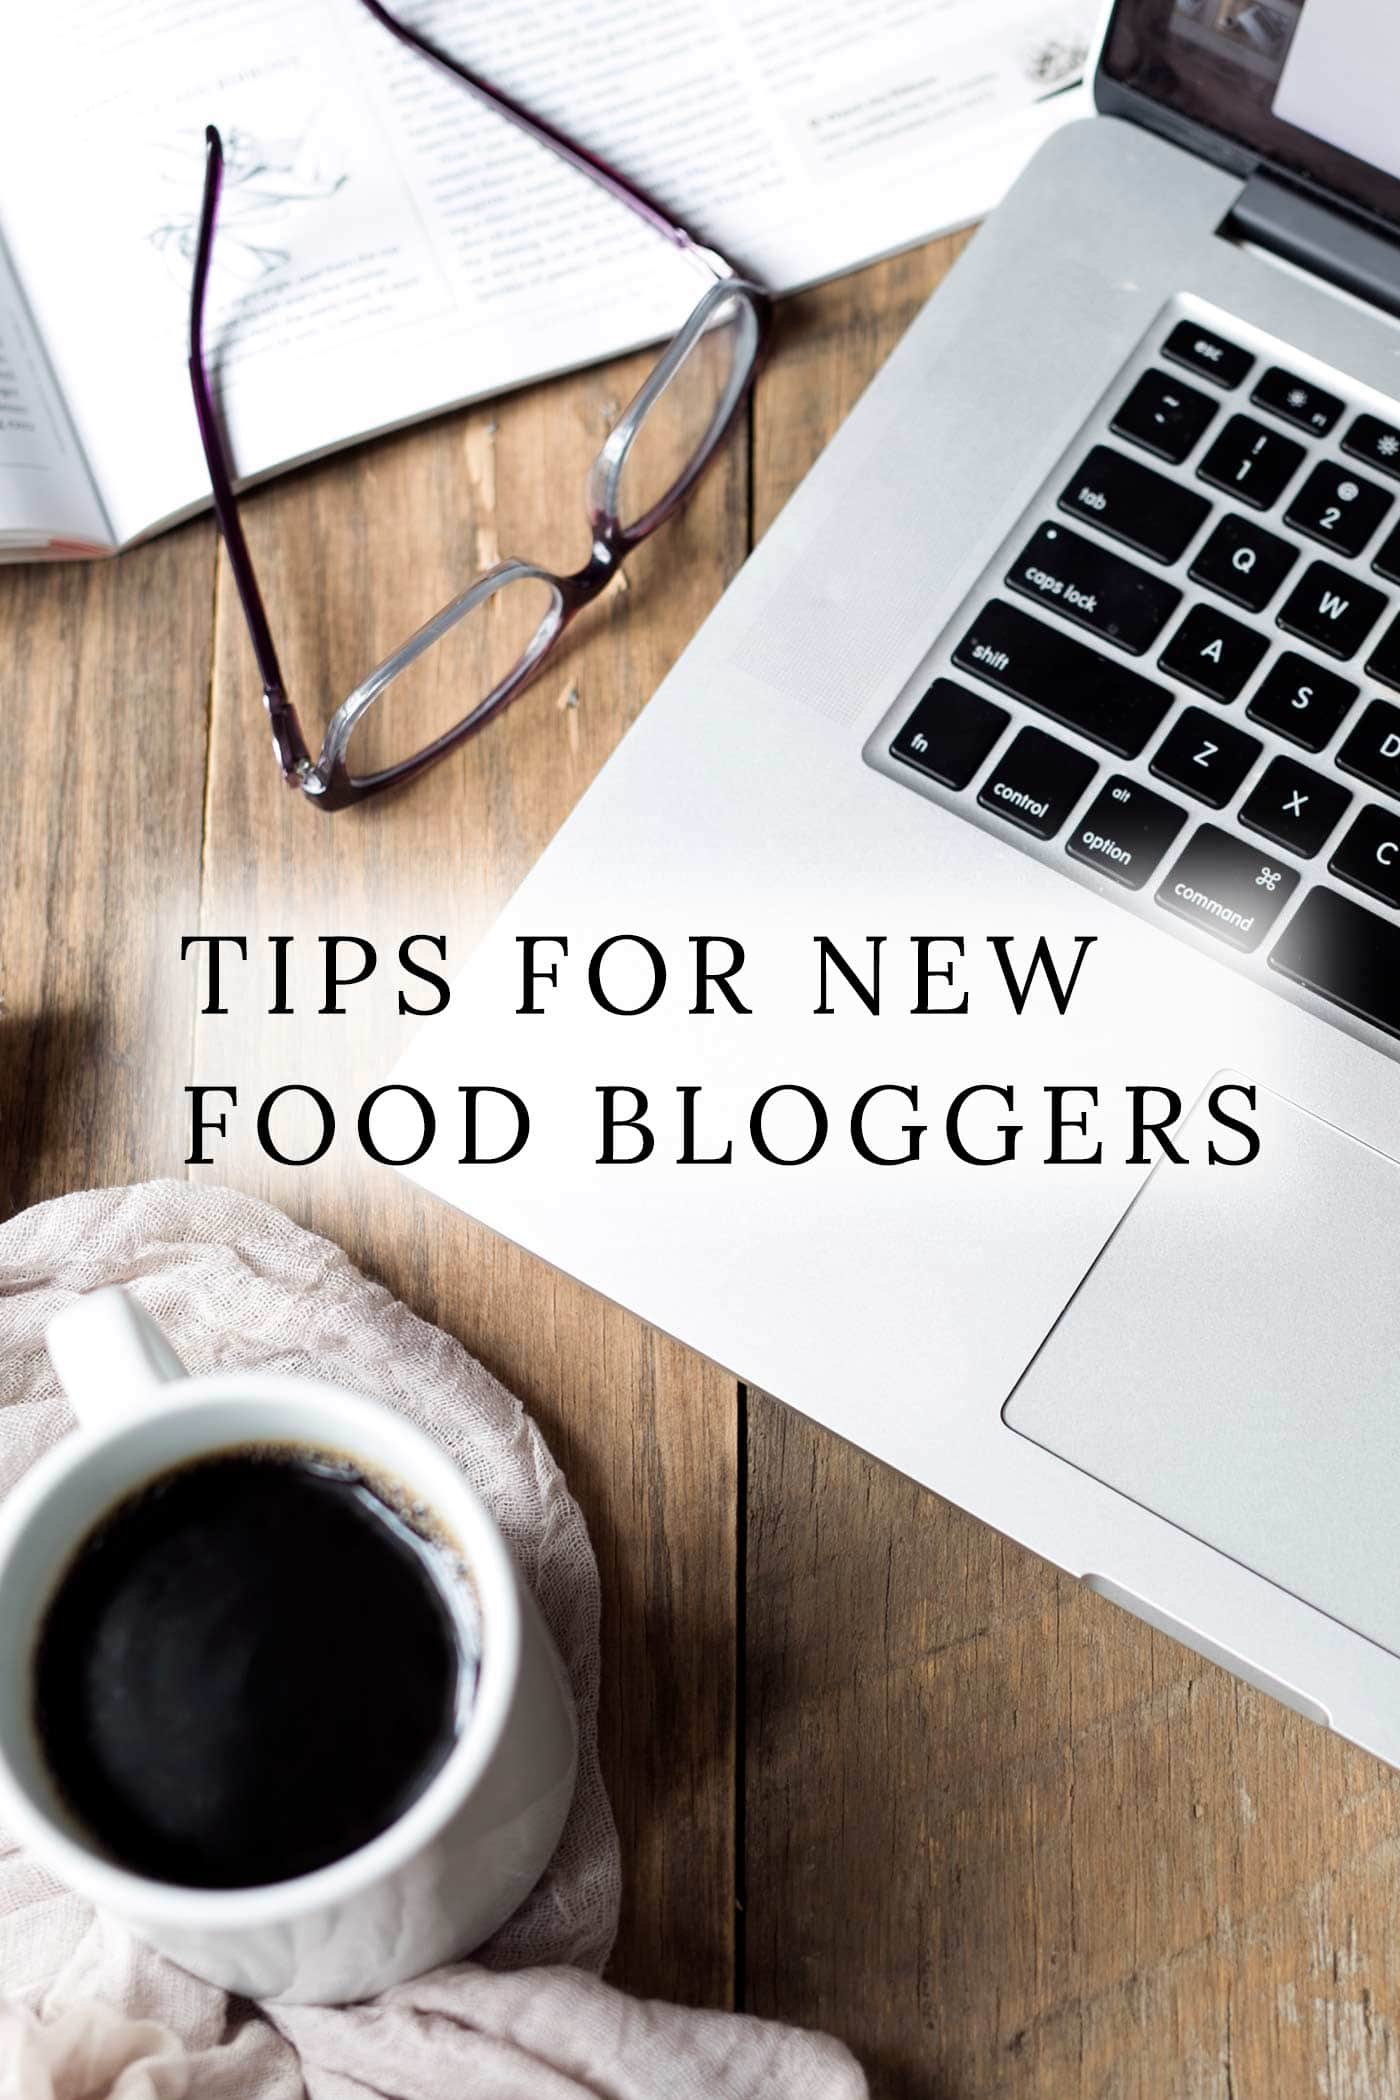 My Top 20 Tips For New Food Bloggers! Food Blogging Tips.